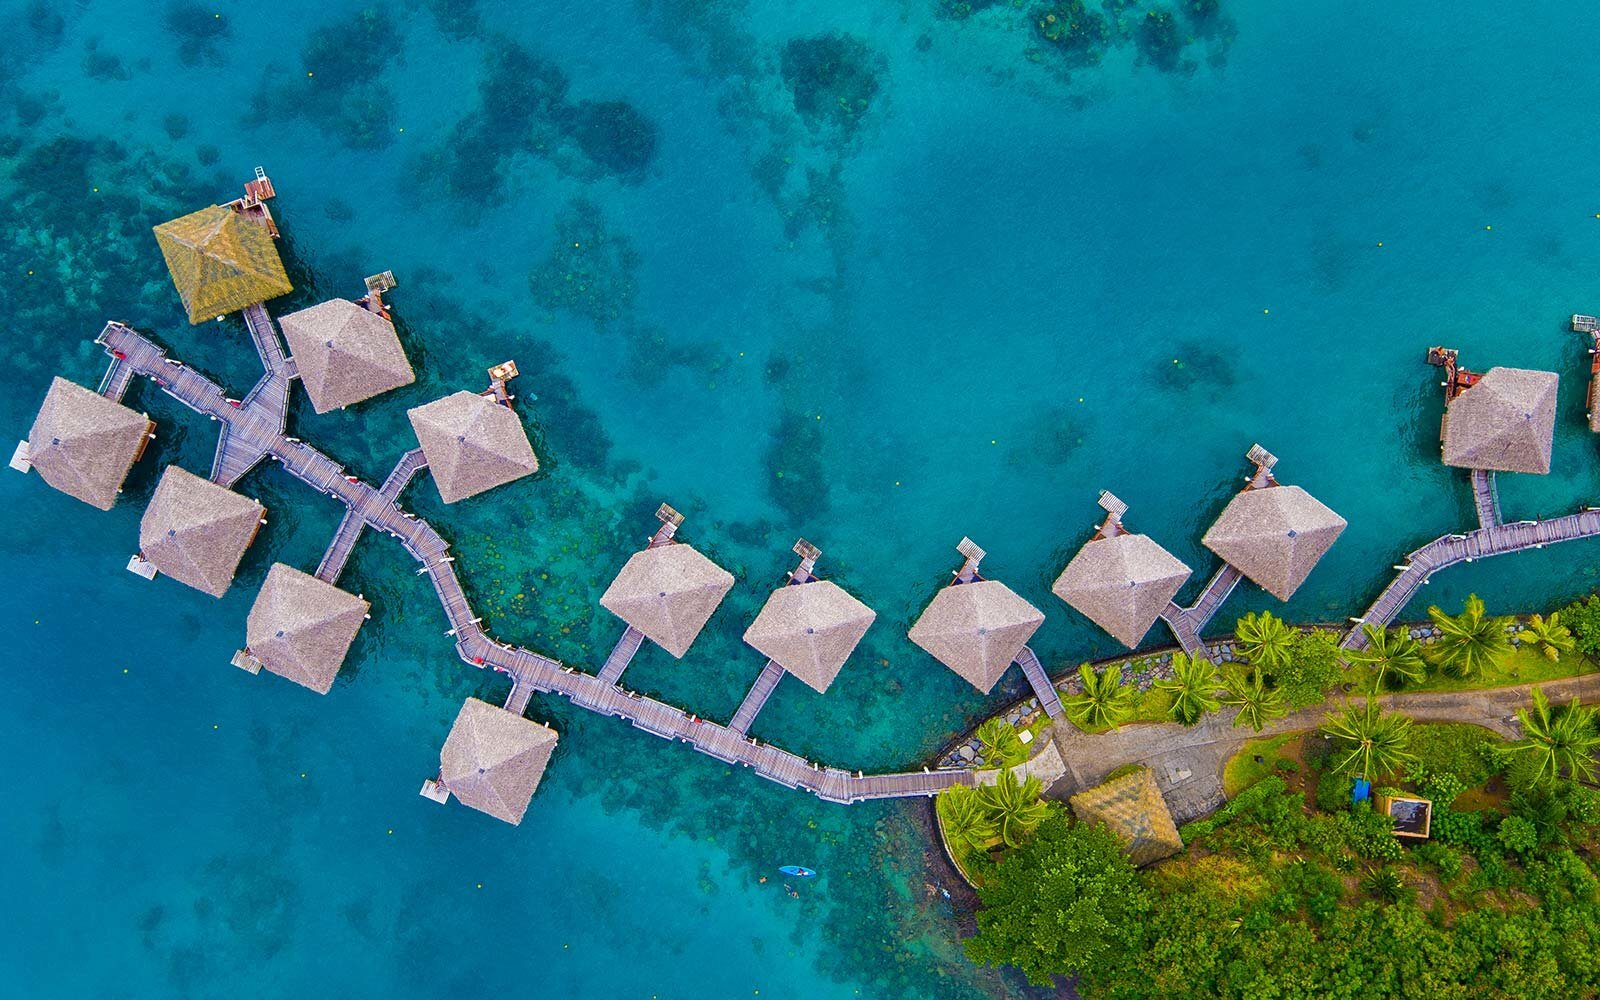 Chase Guttman's Drone Photography Captures Stunning